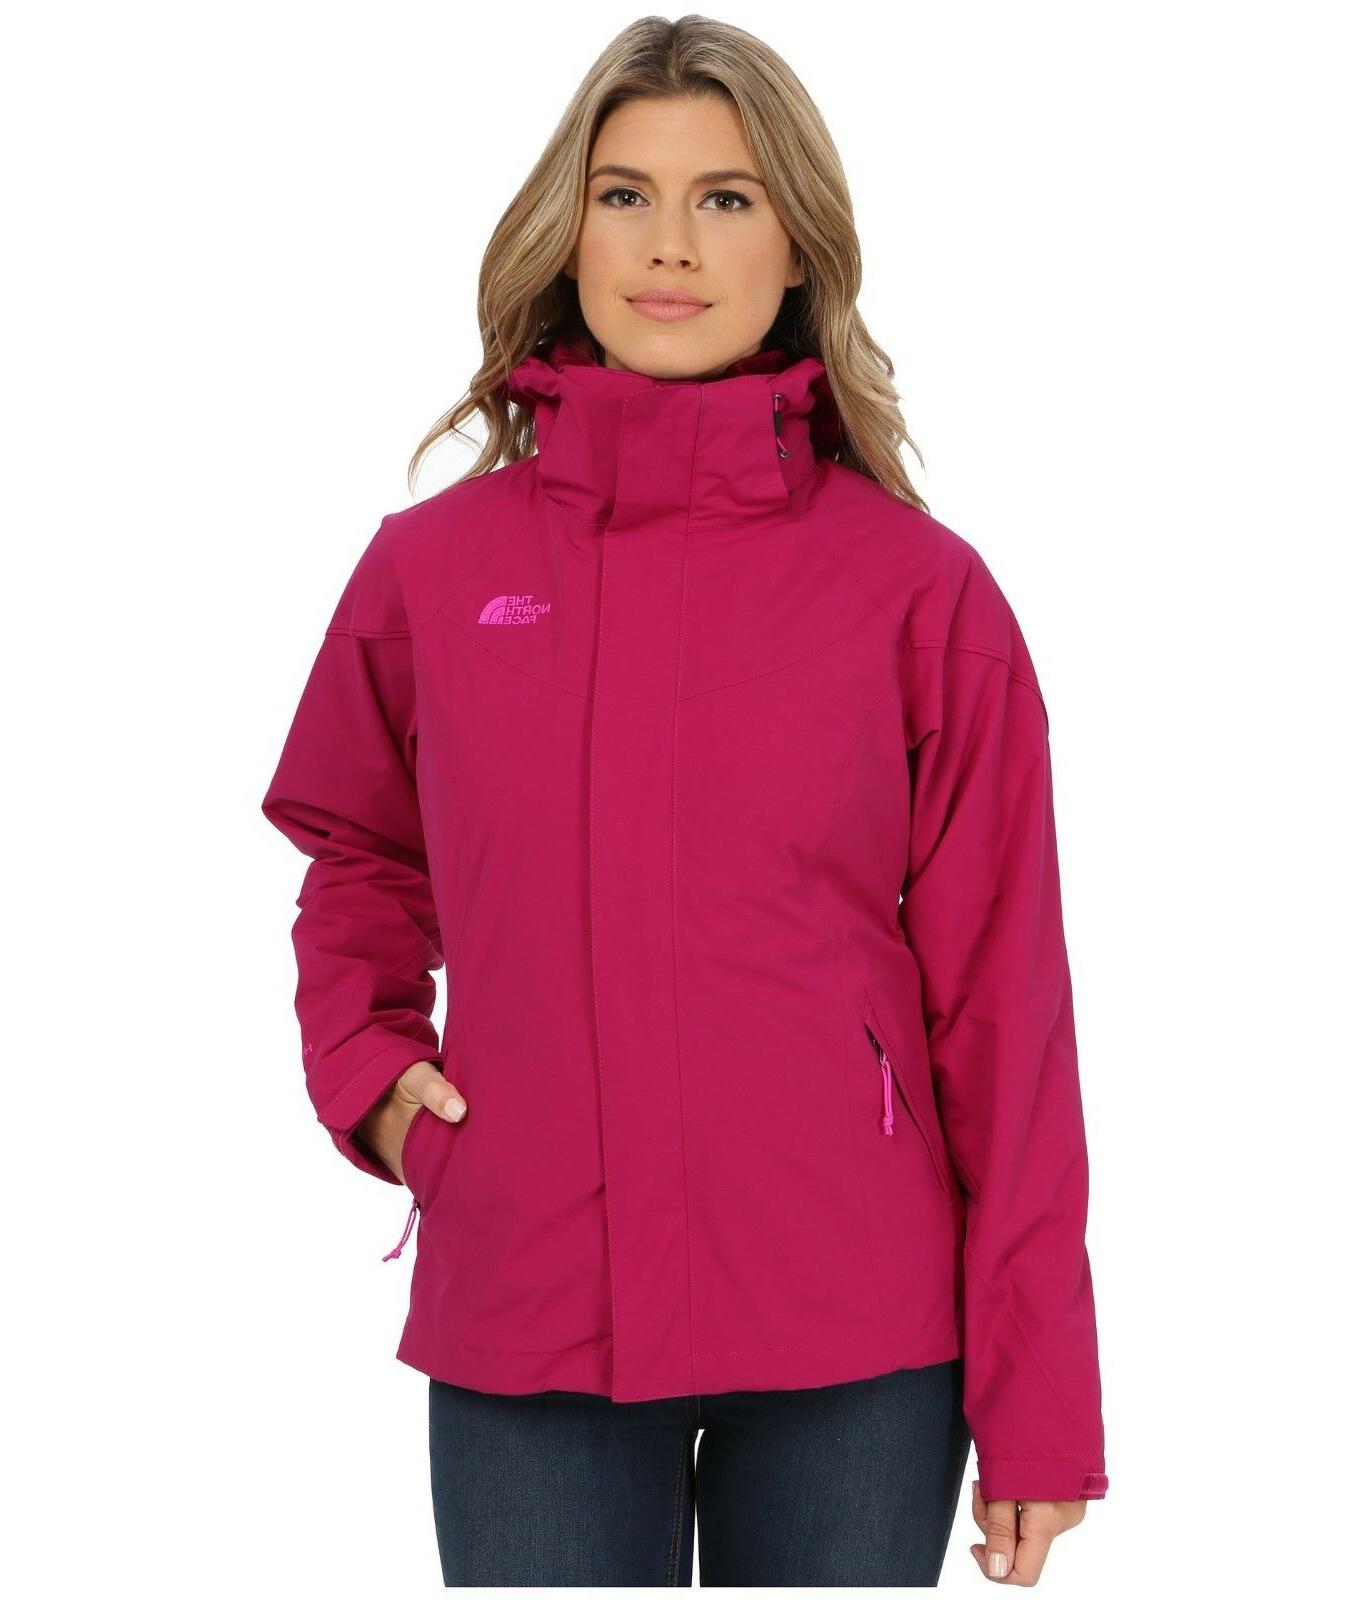 THE NORTH FACE WOMENS BOUNDARY TRICLIMATE 3IN1 JACKET WATERP